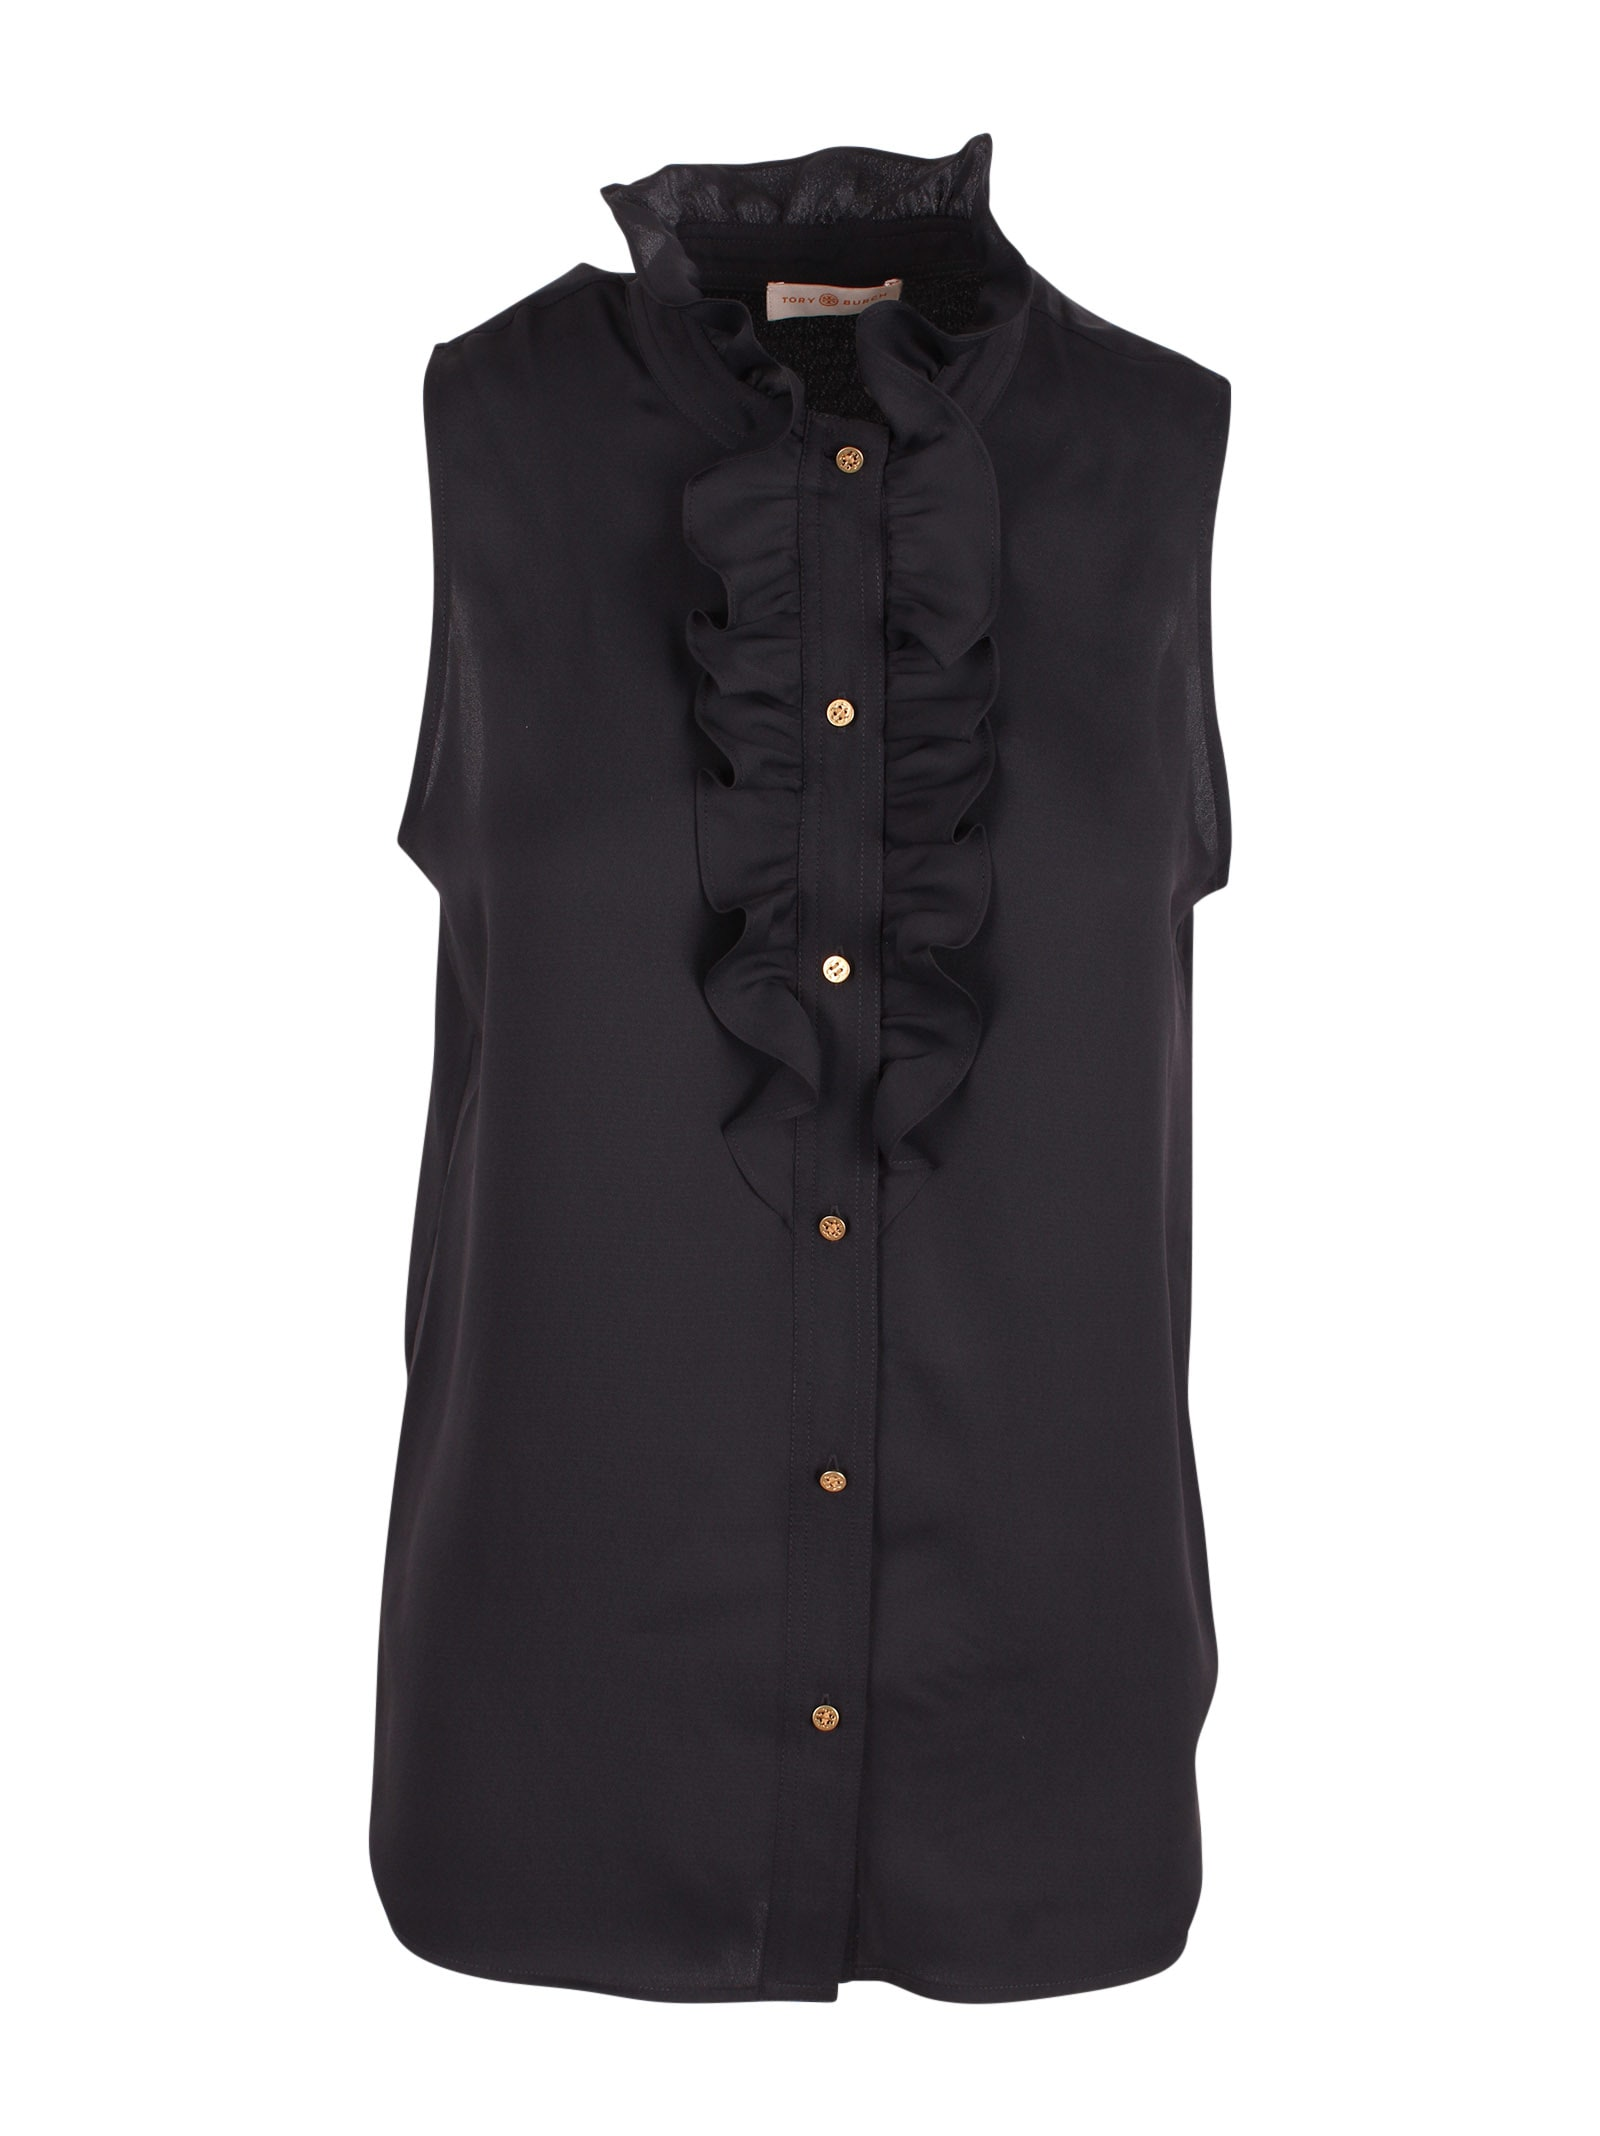 Tory Burch Polyester Top